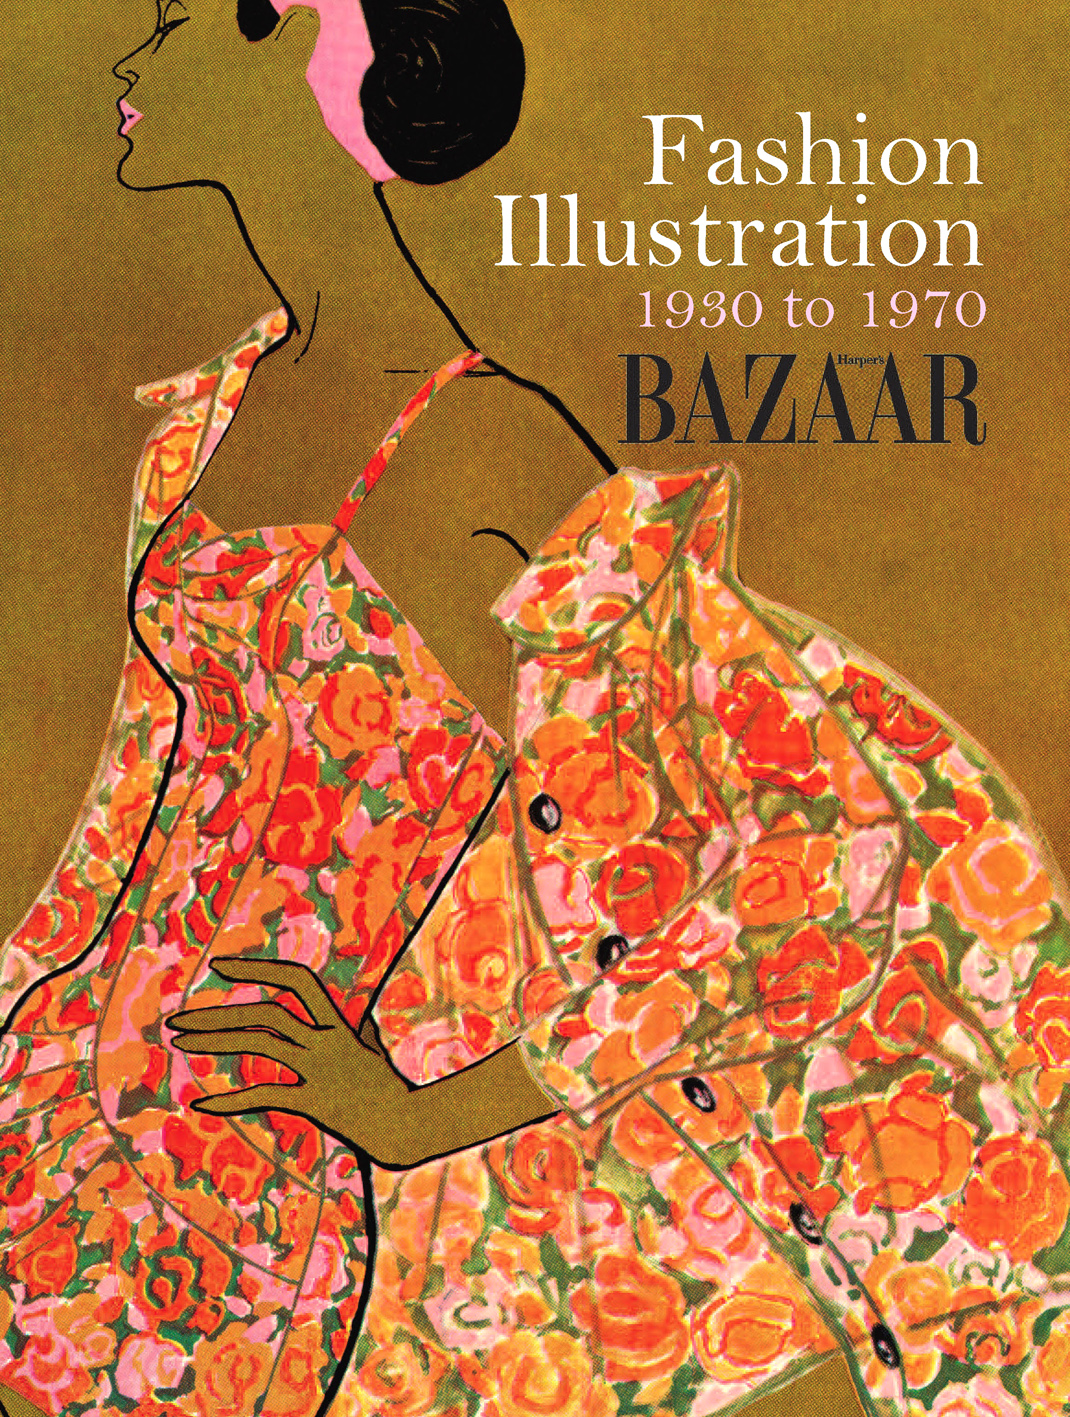 Fashion Illustration 1930 to 1970